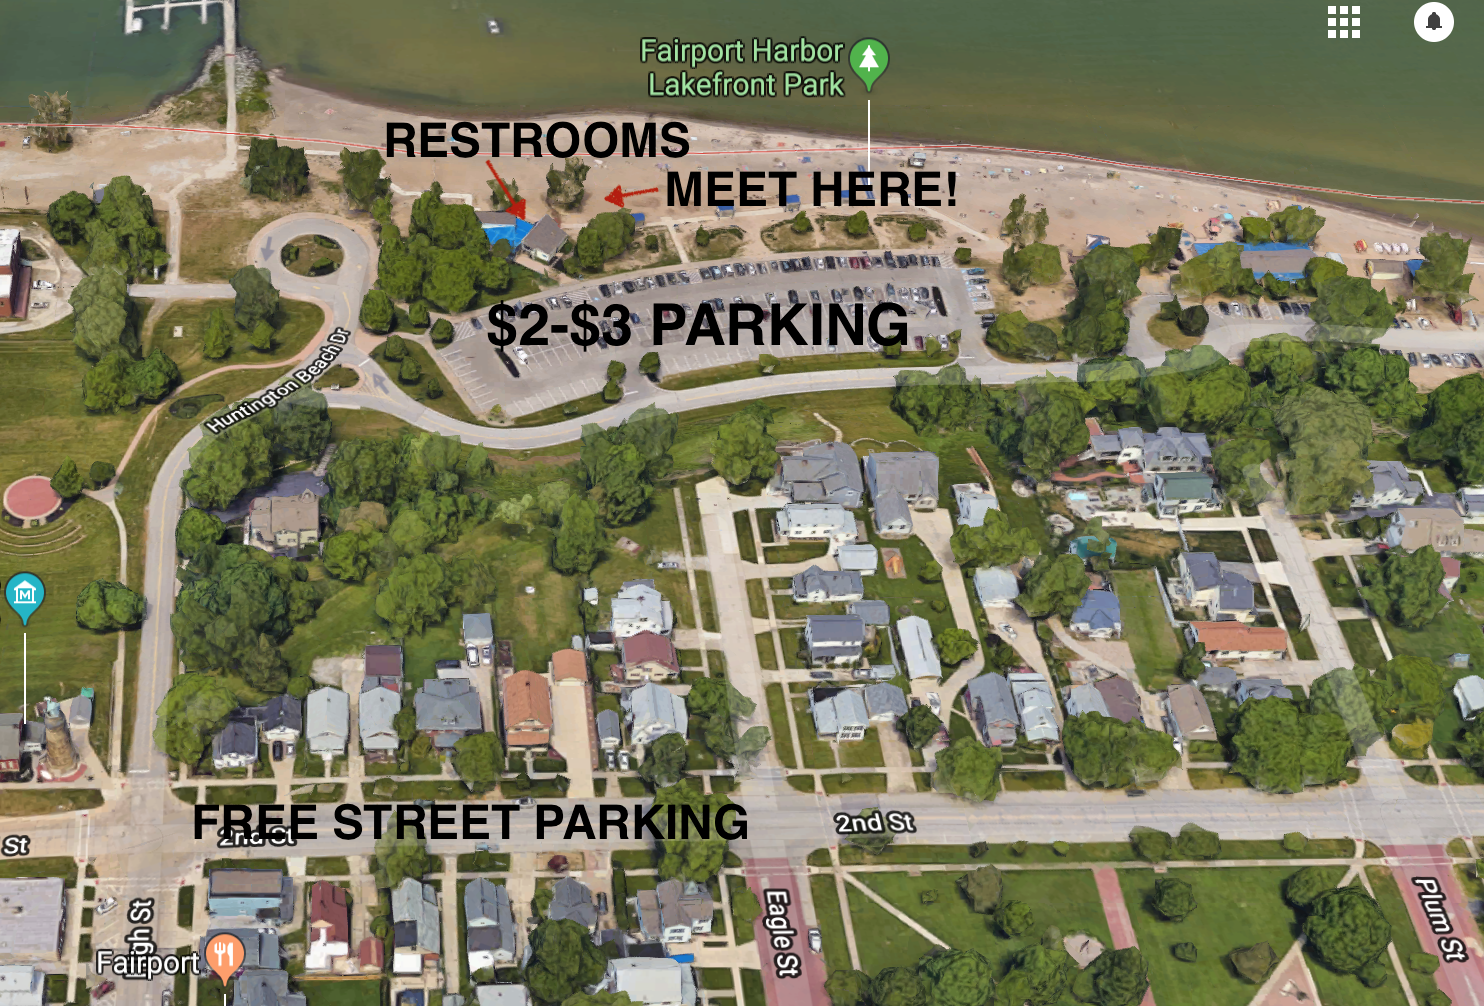 Pay to park right at the beach during summer season for $2 (Lake County residents), $3 for out of county. There is free street parking on 2nd Street which is a short walk away (2 min). There are restrooms and changing stalls between the shore and the parking lot. Meet your coach outside of the farthest West restrooms.